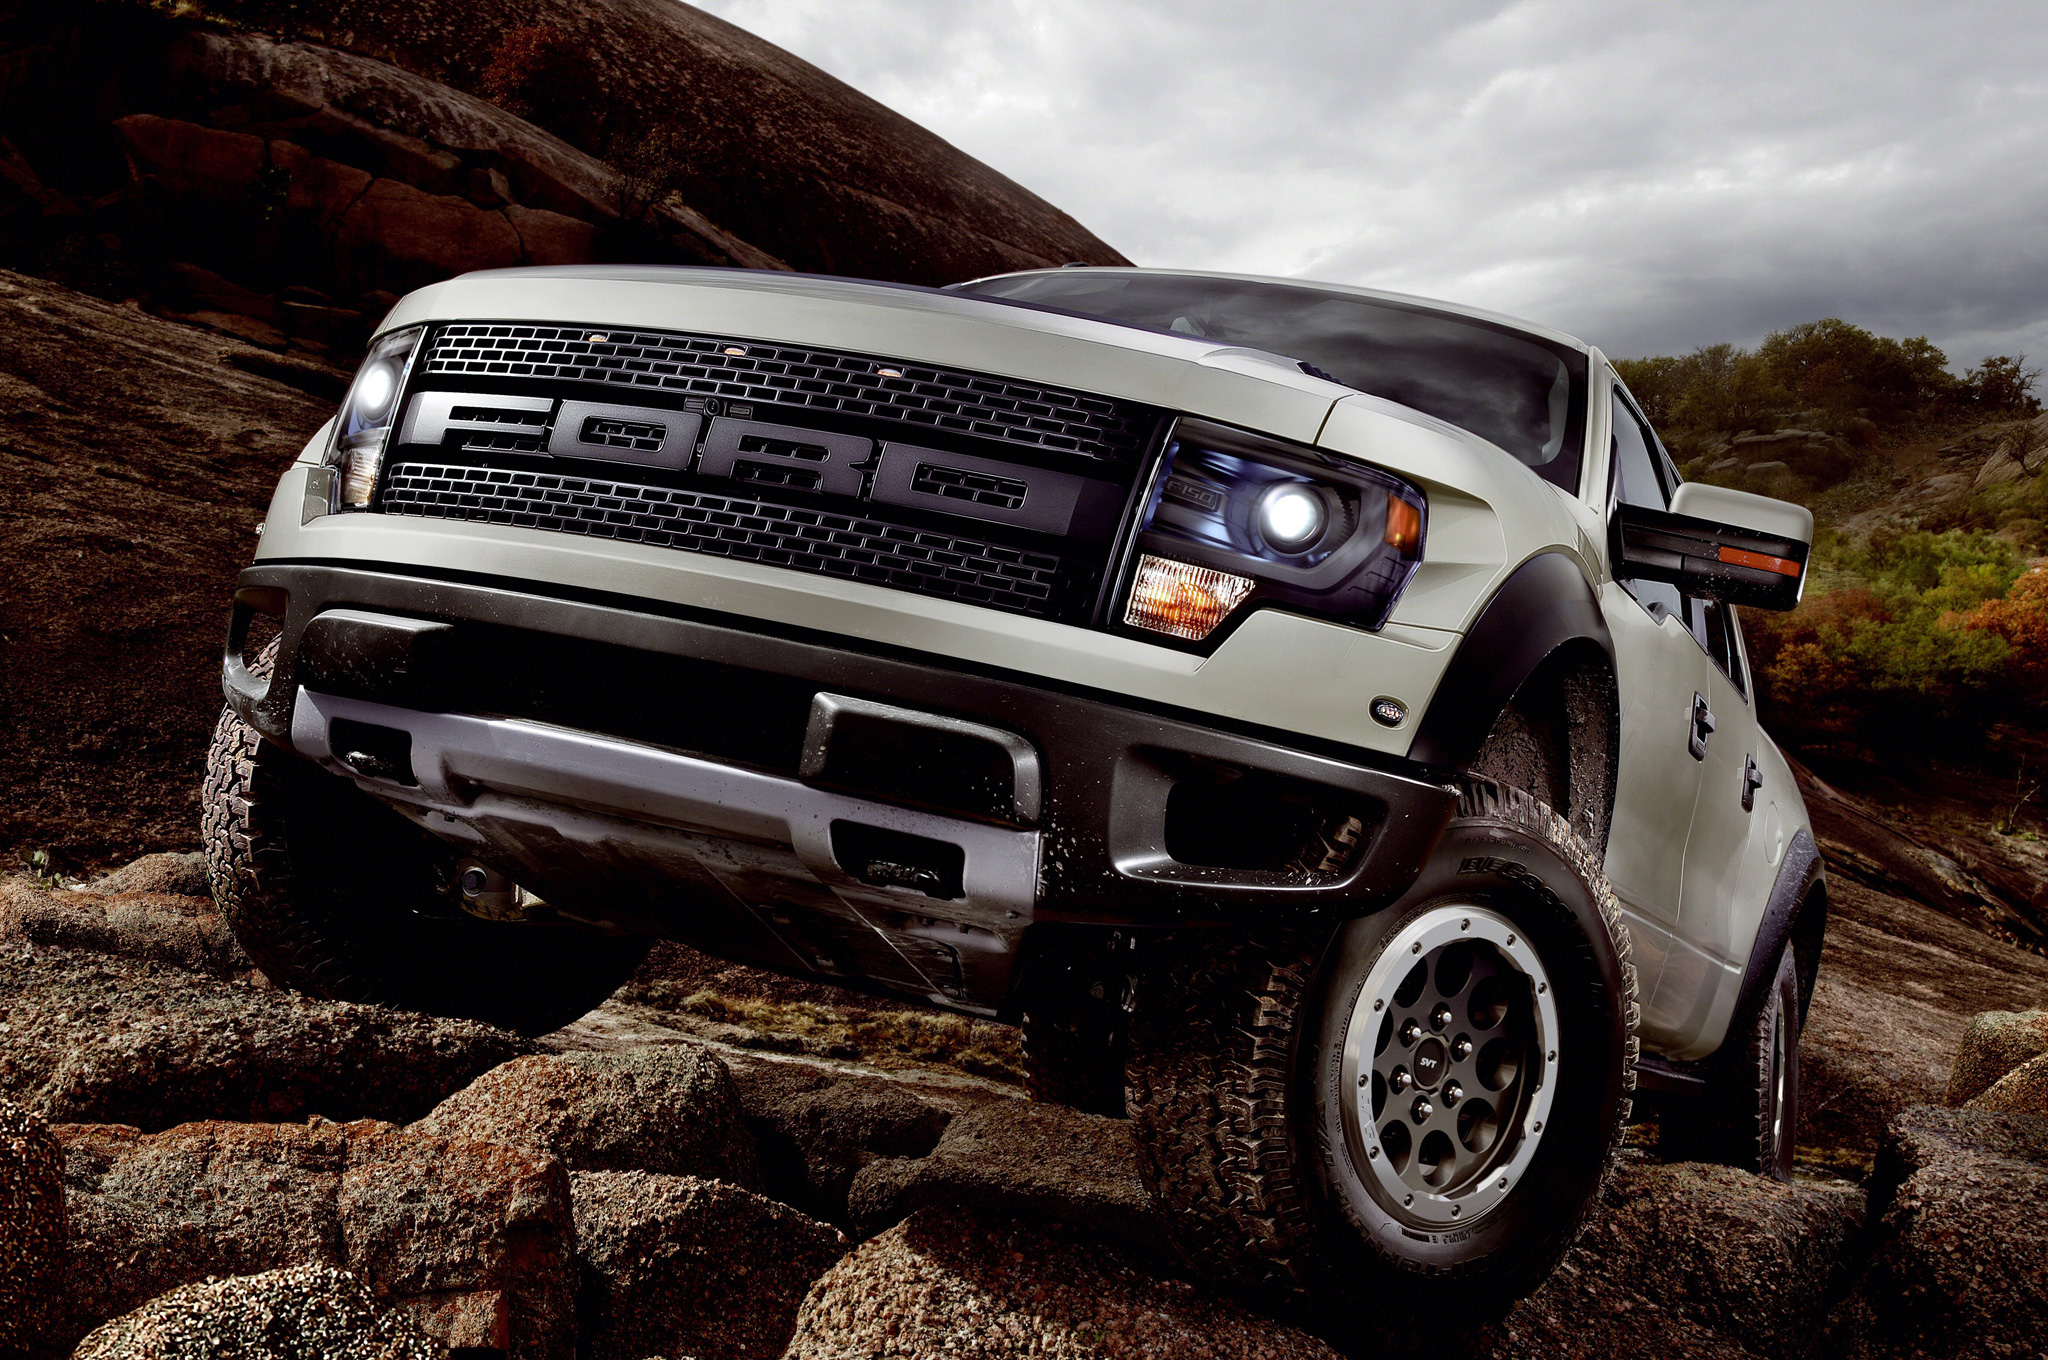 f-150 svt raptor crushing sales goals, ford to build more - motortrend